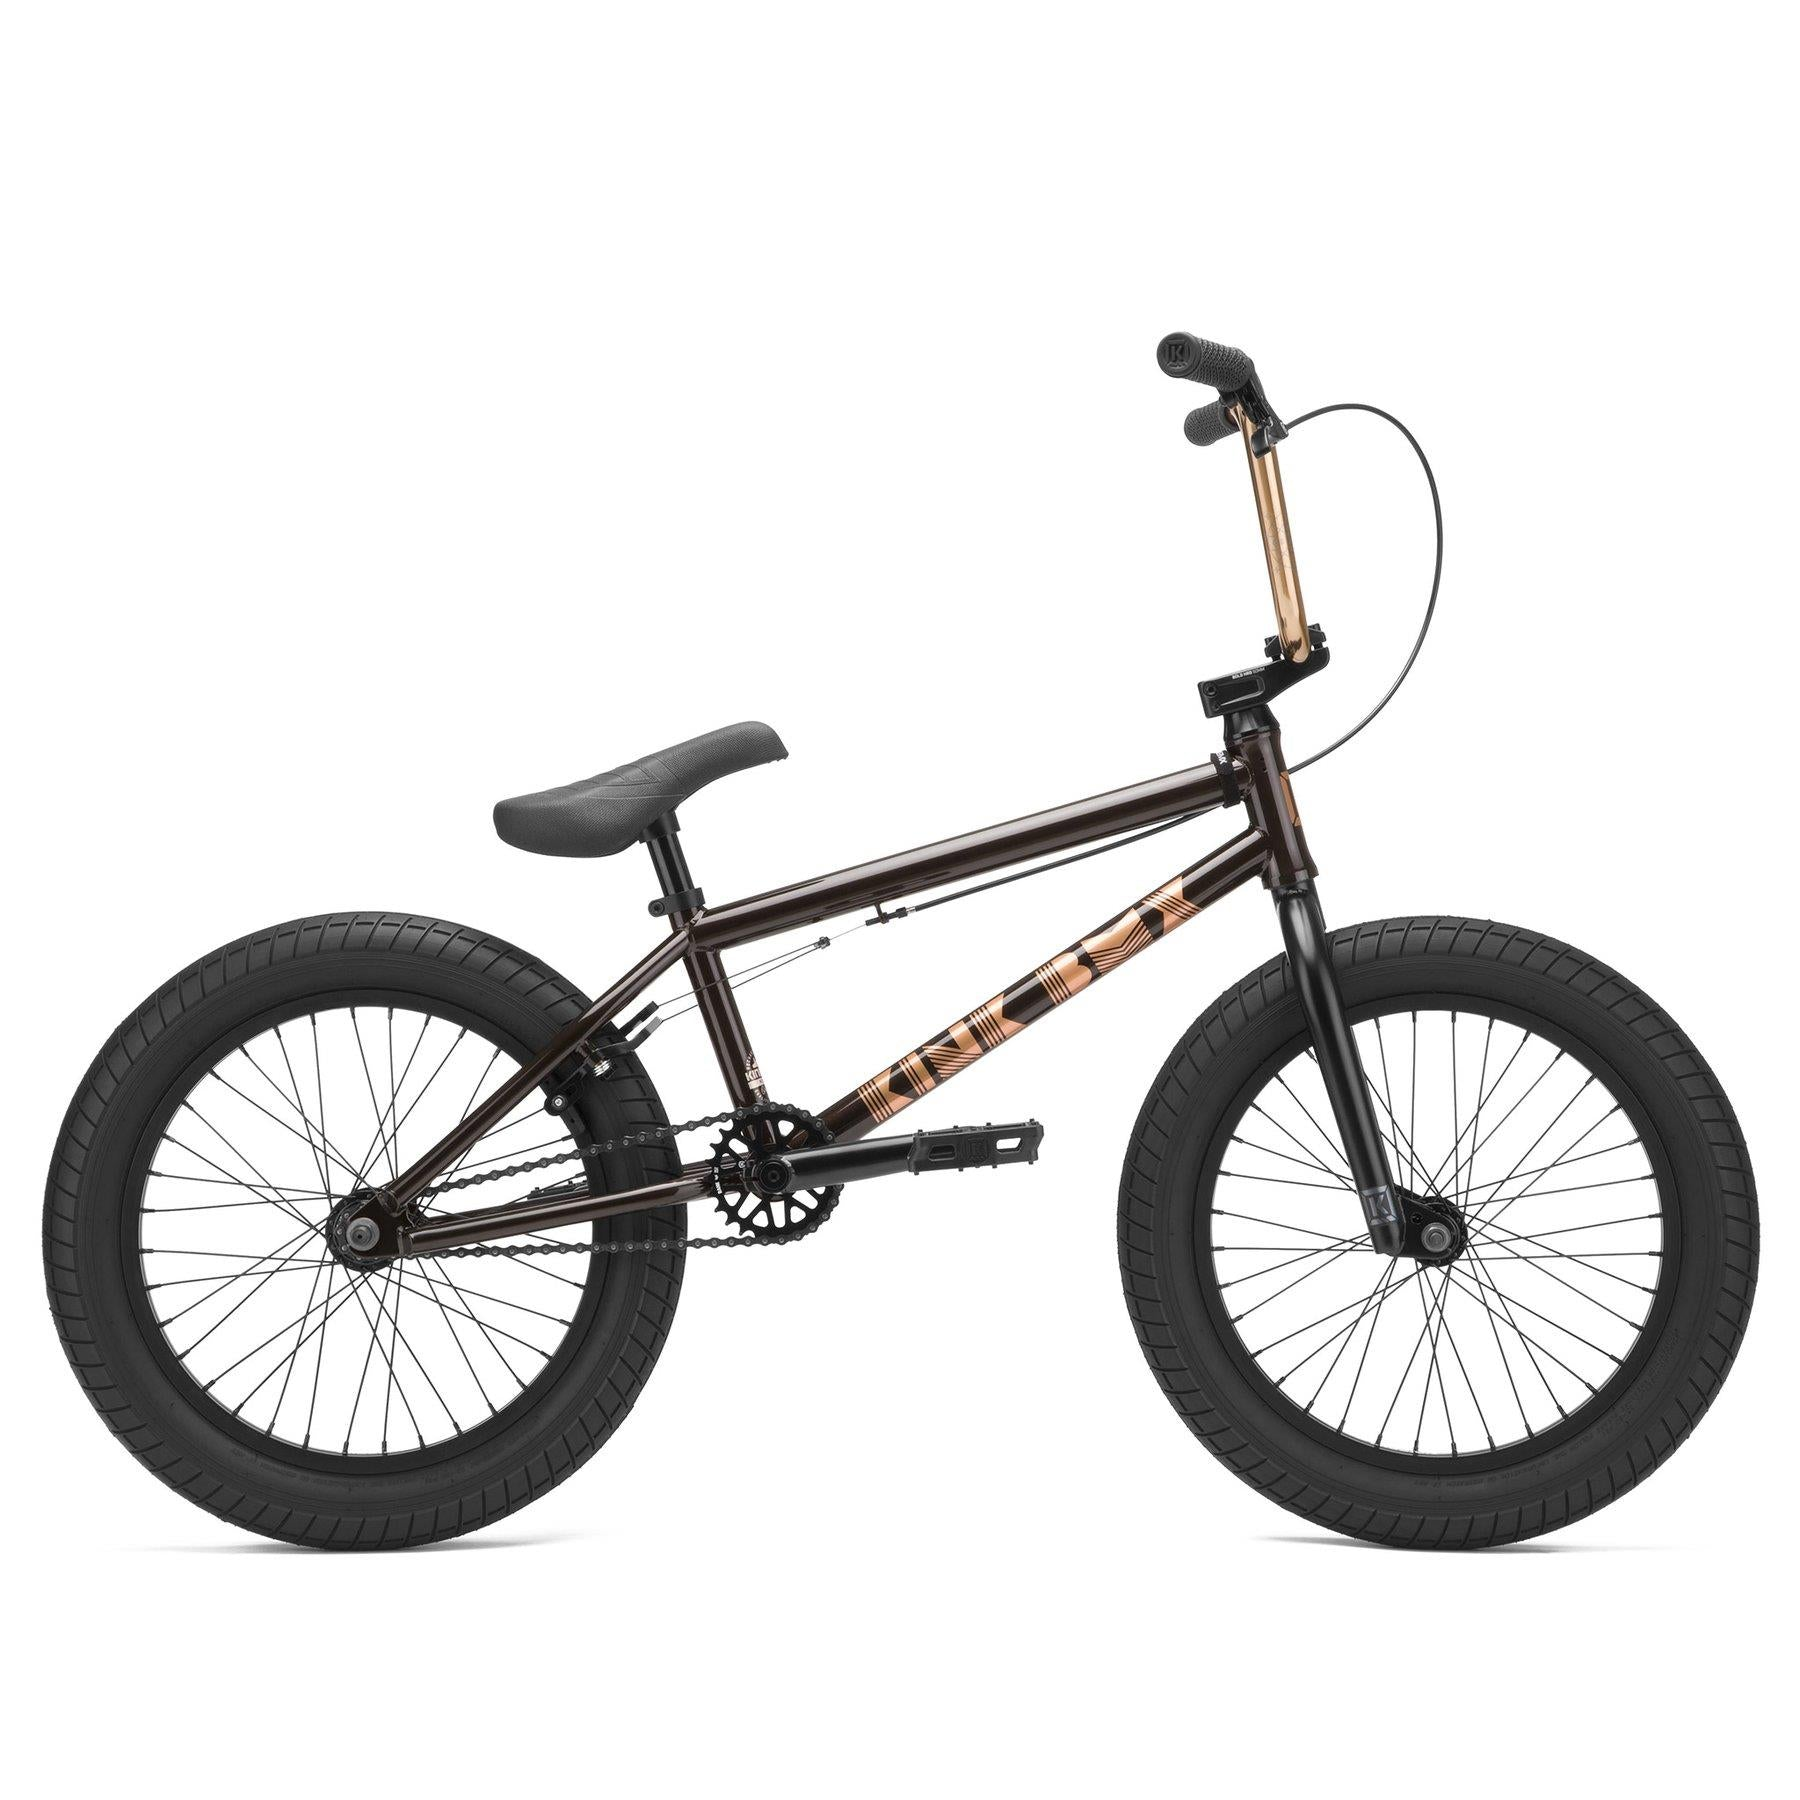 "Kink Kicker 18"" BMX Bike 2021"